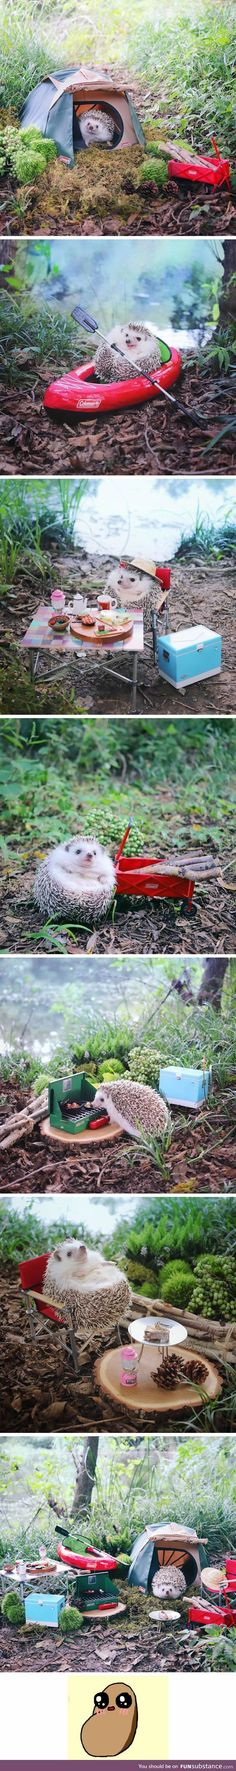 This camping hedgehog is the cutest thing you see today #babyhedgehogs